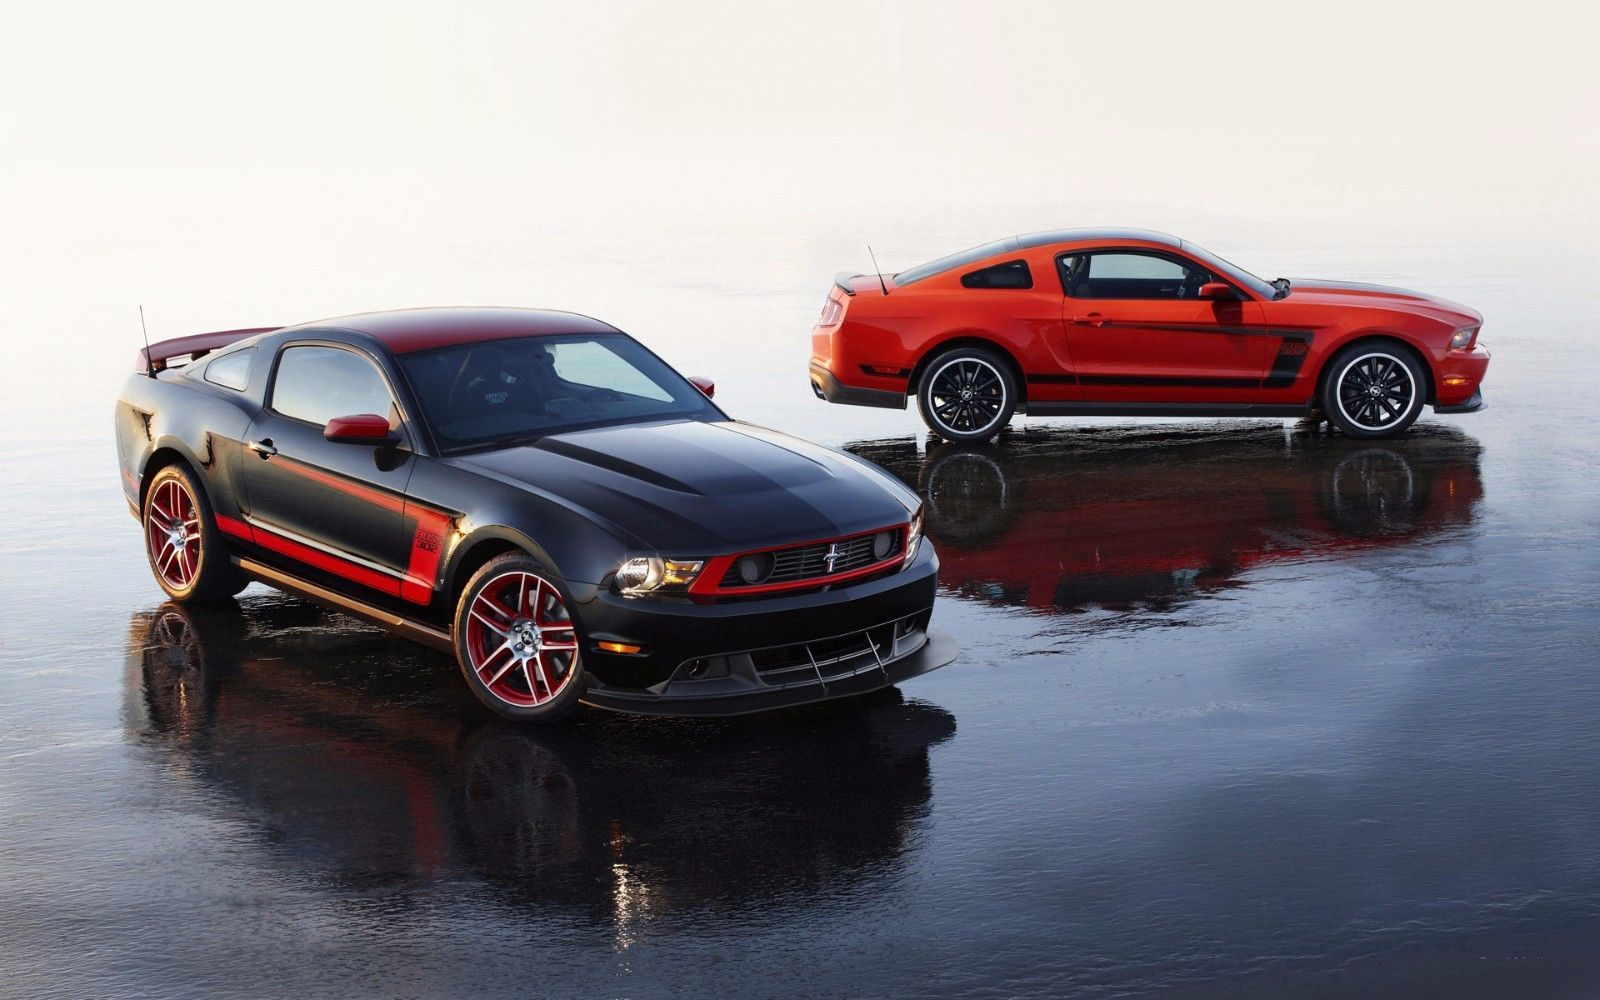 Primary image for 2013 Mustang Boss 302 Laguna Seca 24X36 inch poster, sports car, muscle car